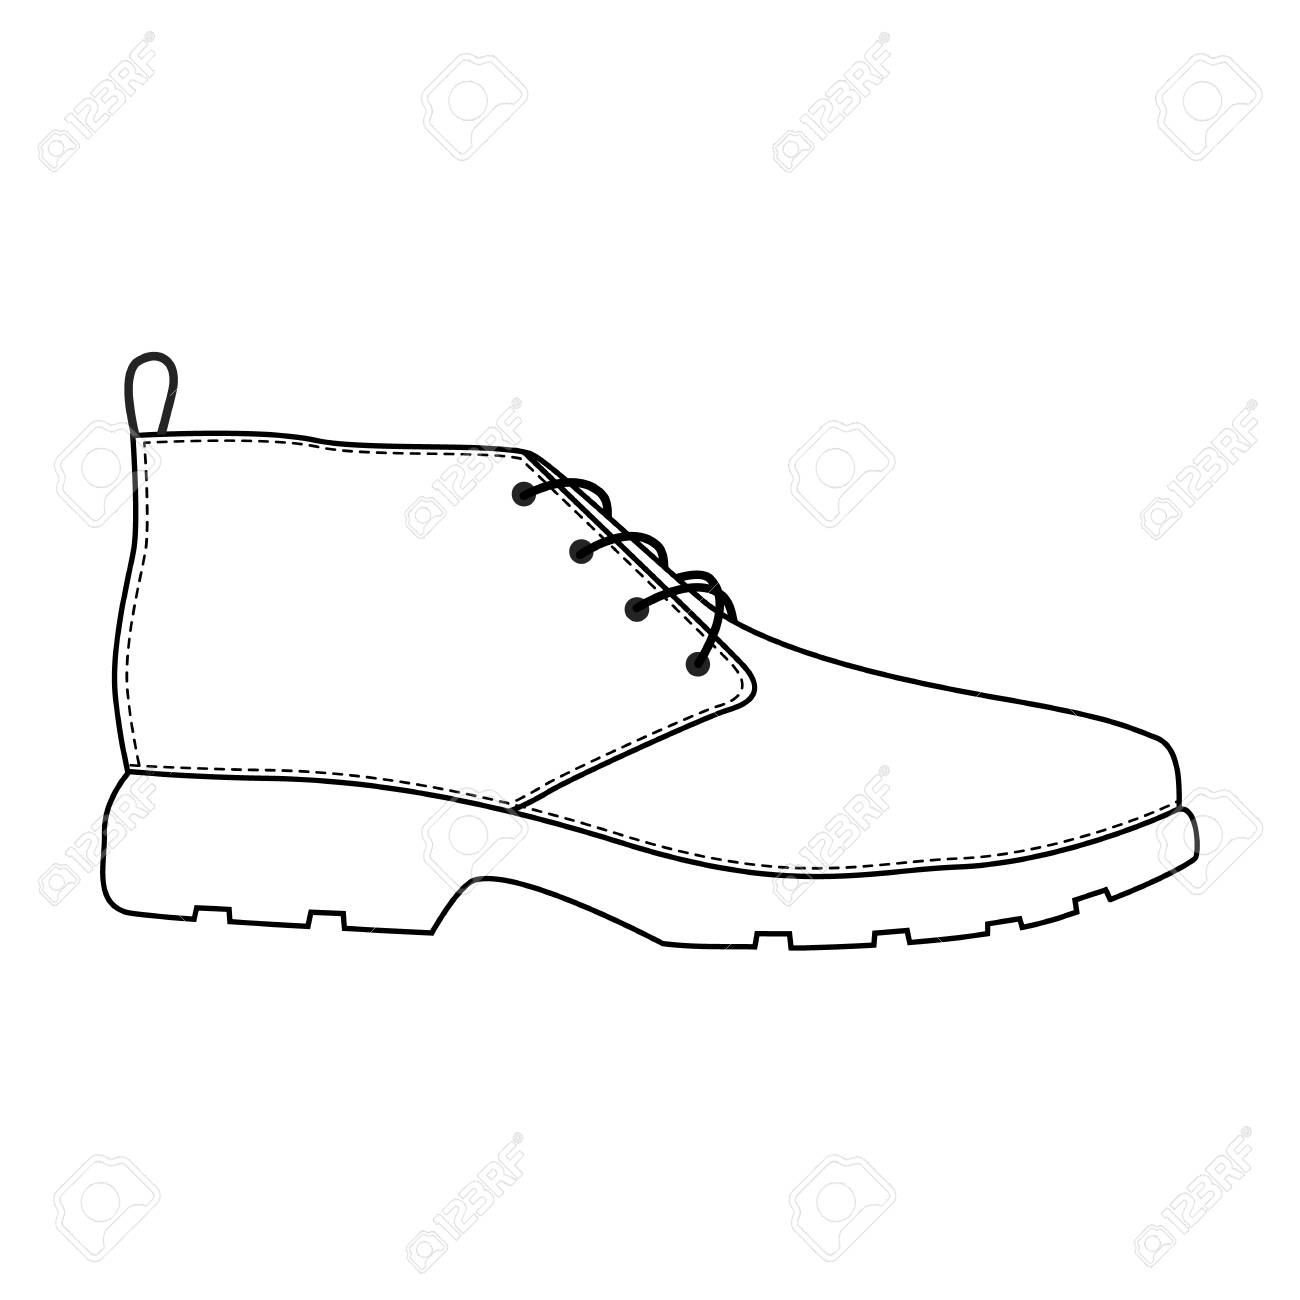 f9d46c1c92 Men shoes isolated. Male man season shoes icons. Technical sketch. Footwear  vector illustration